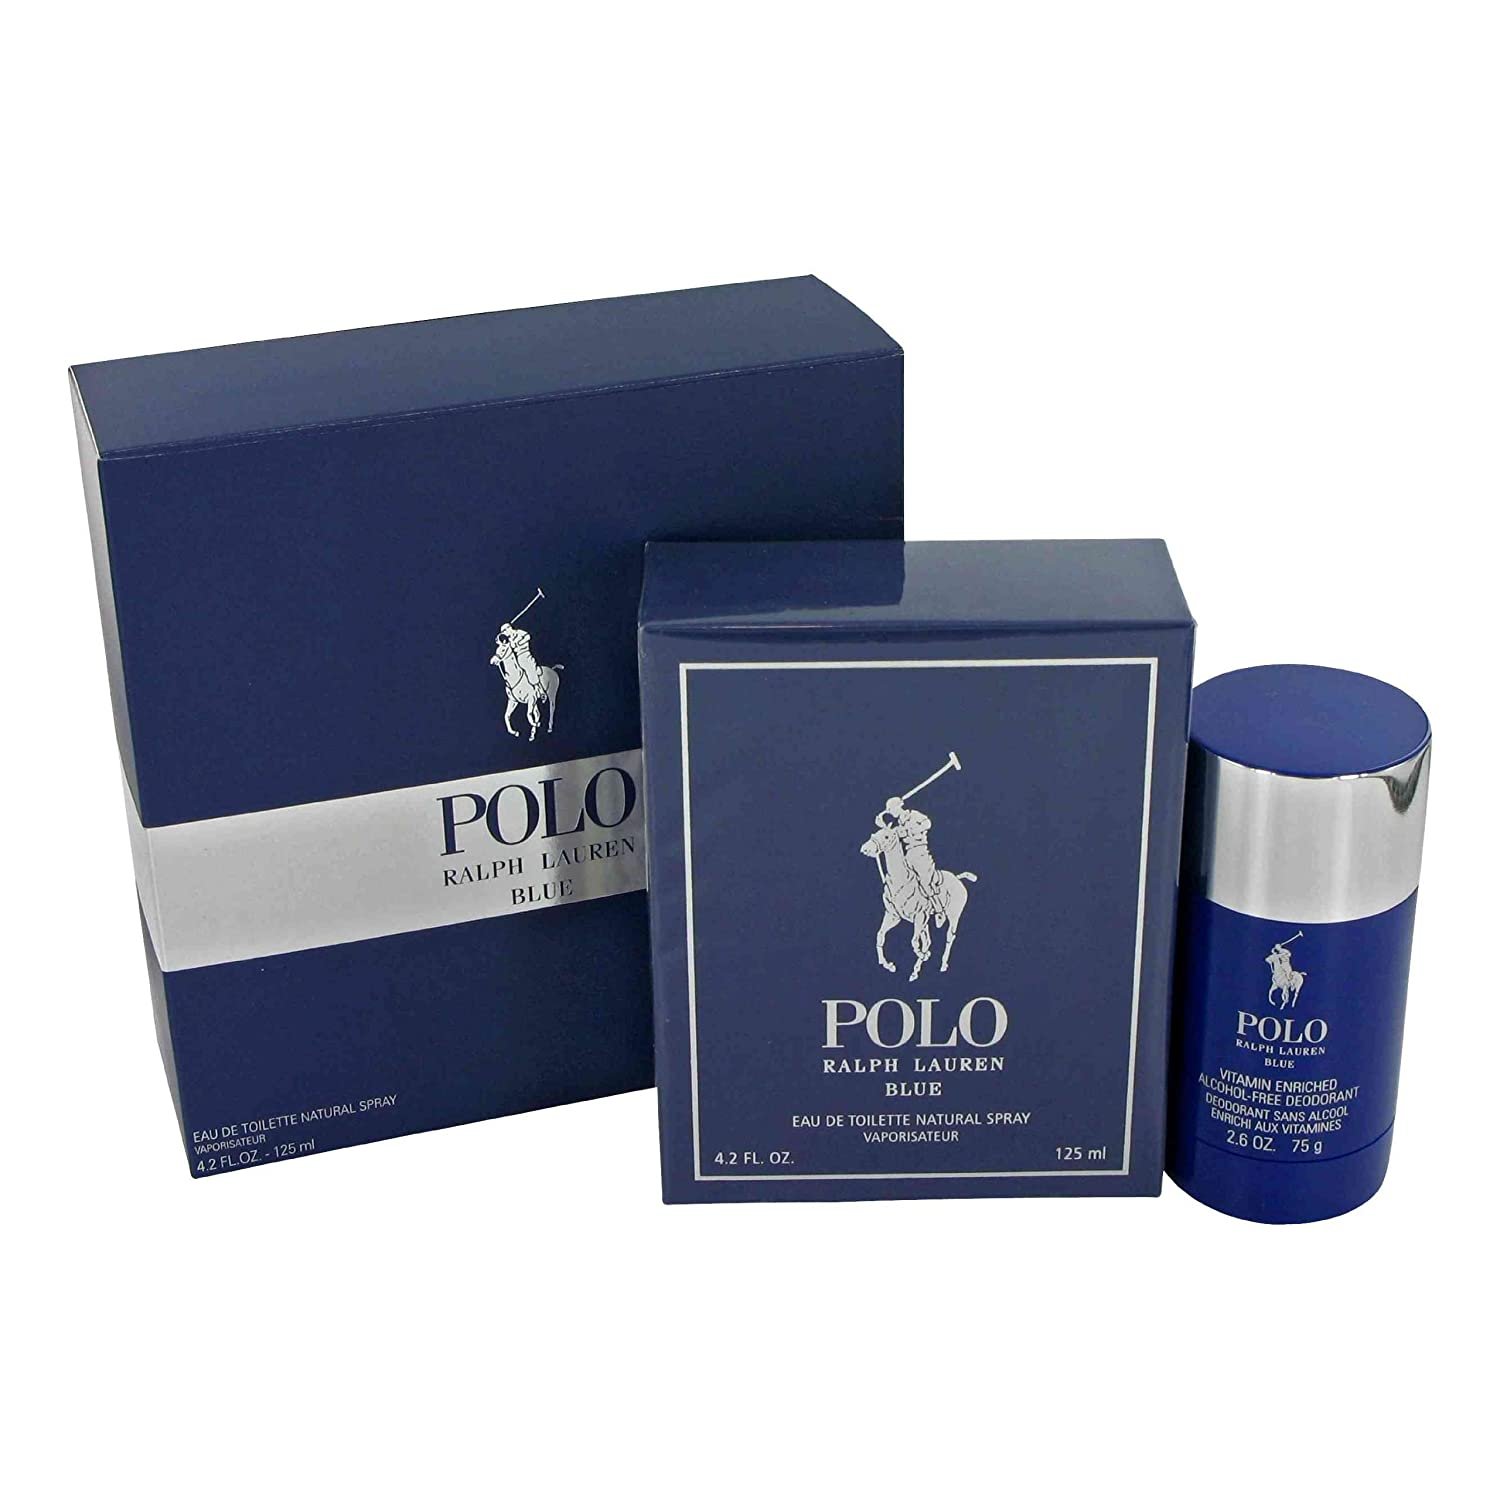 Ralph Lauren Polo Blue Gift Set for Men M-GS-1503